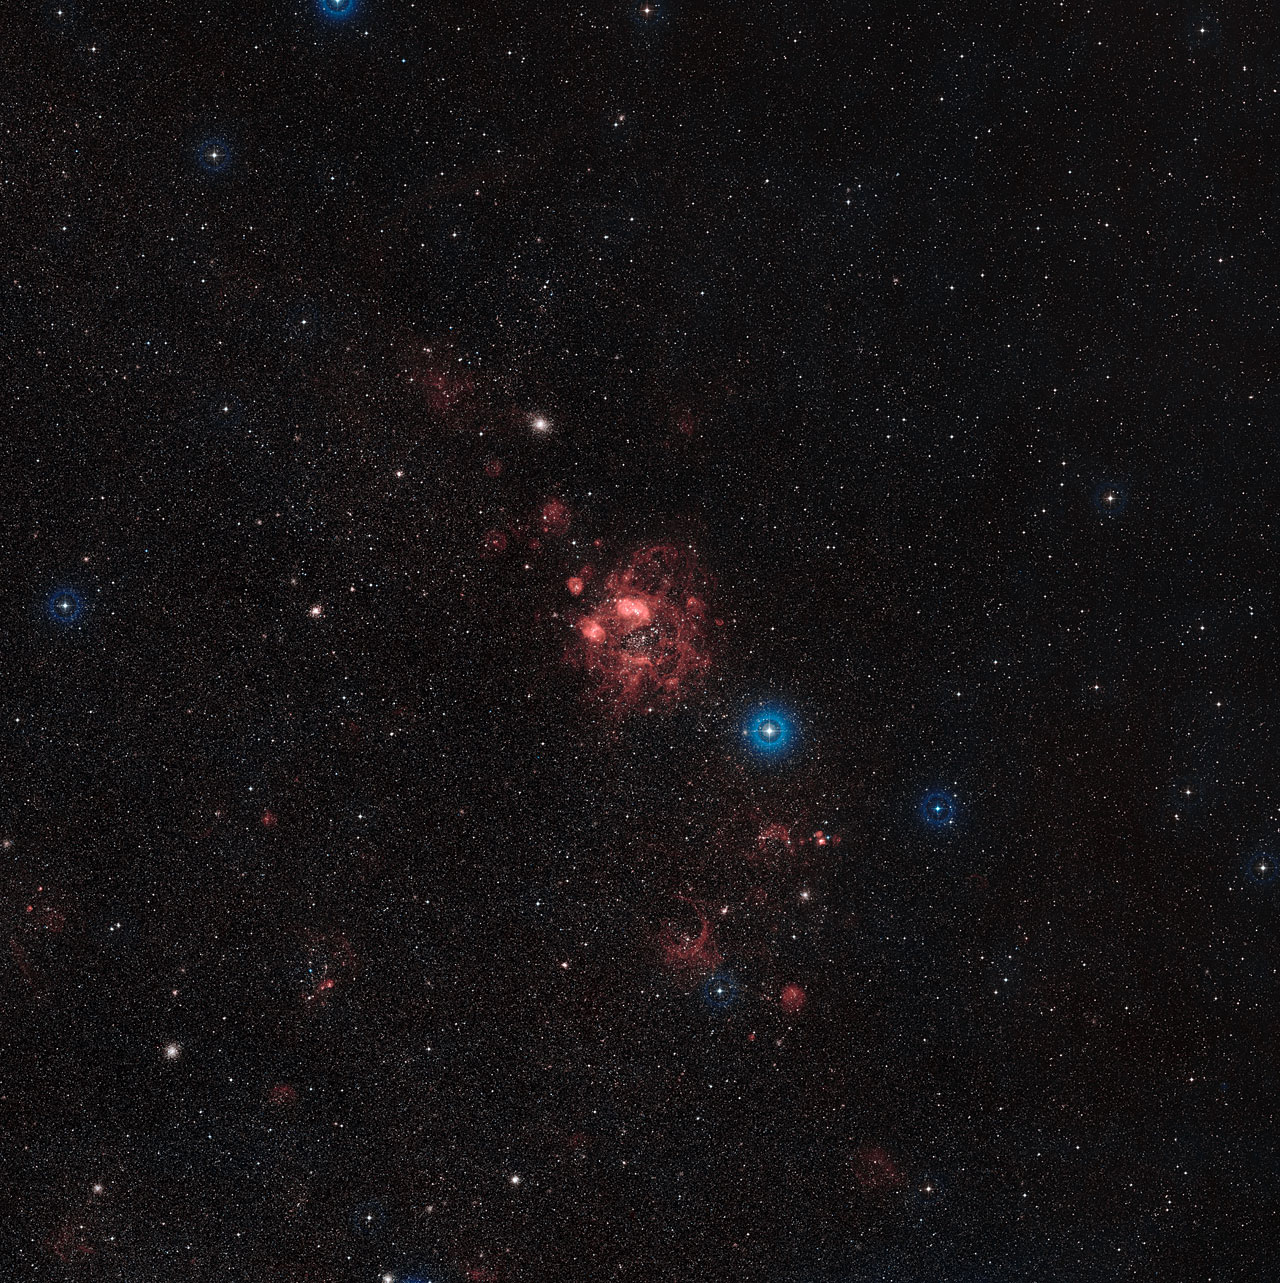 Overview of the Large Magellanic Cloud (ground-based image)